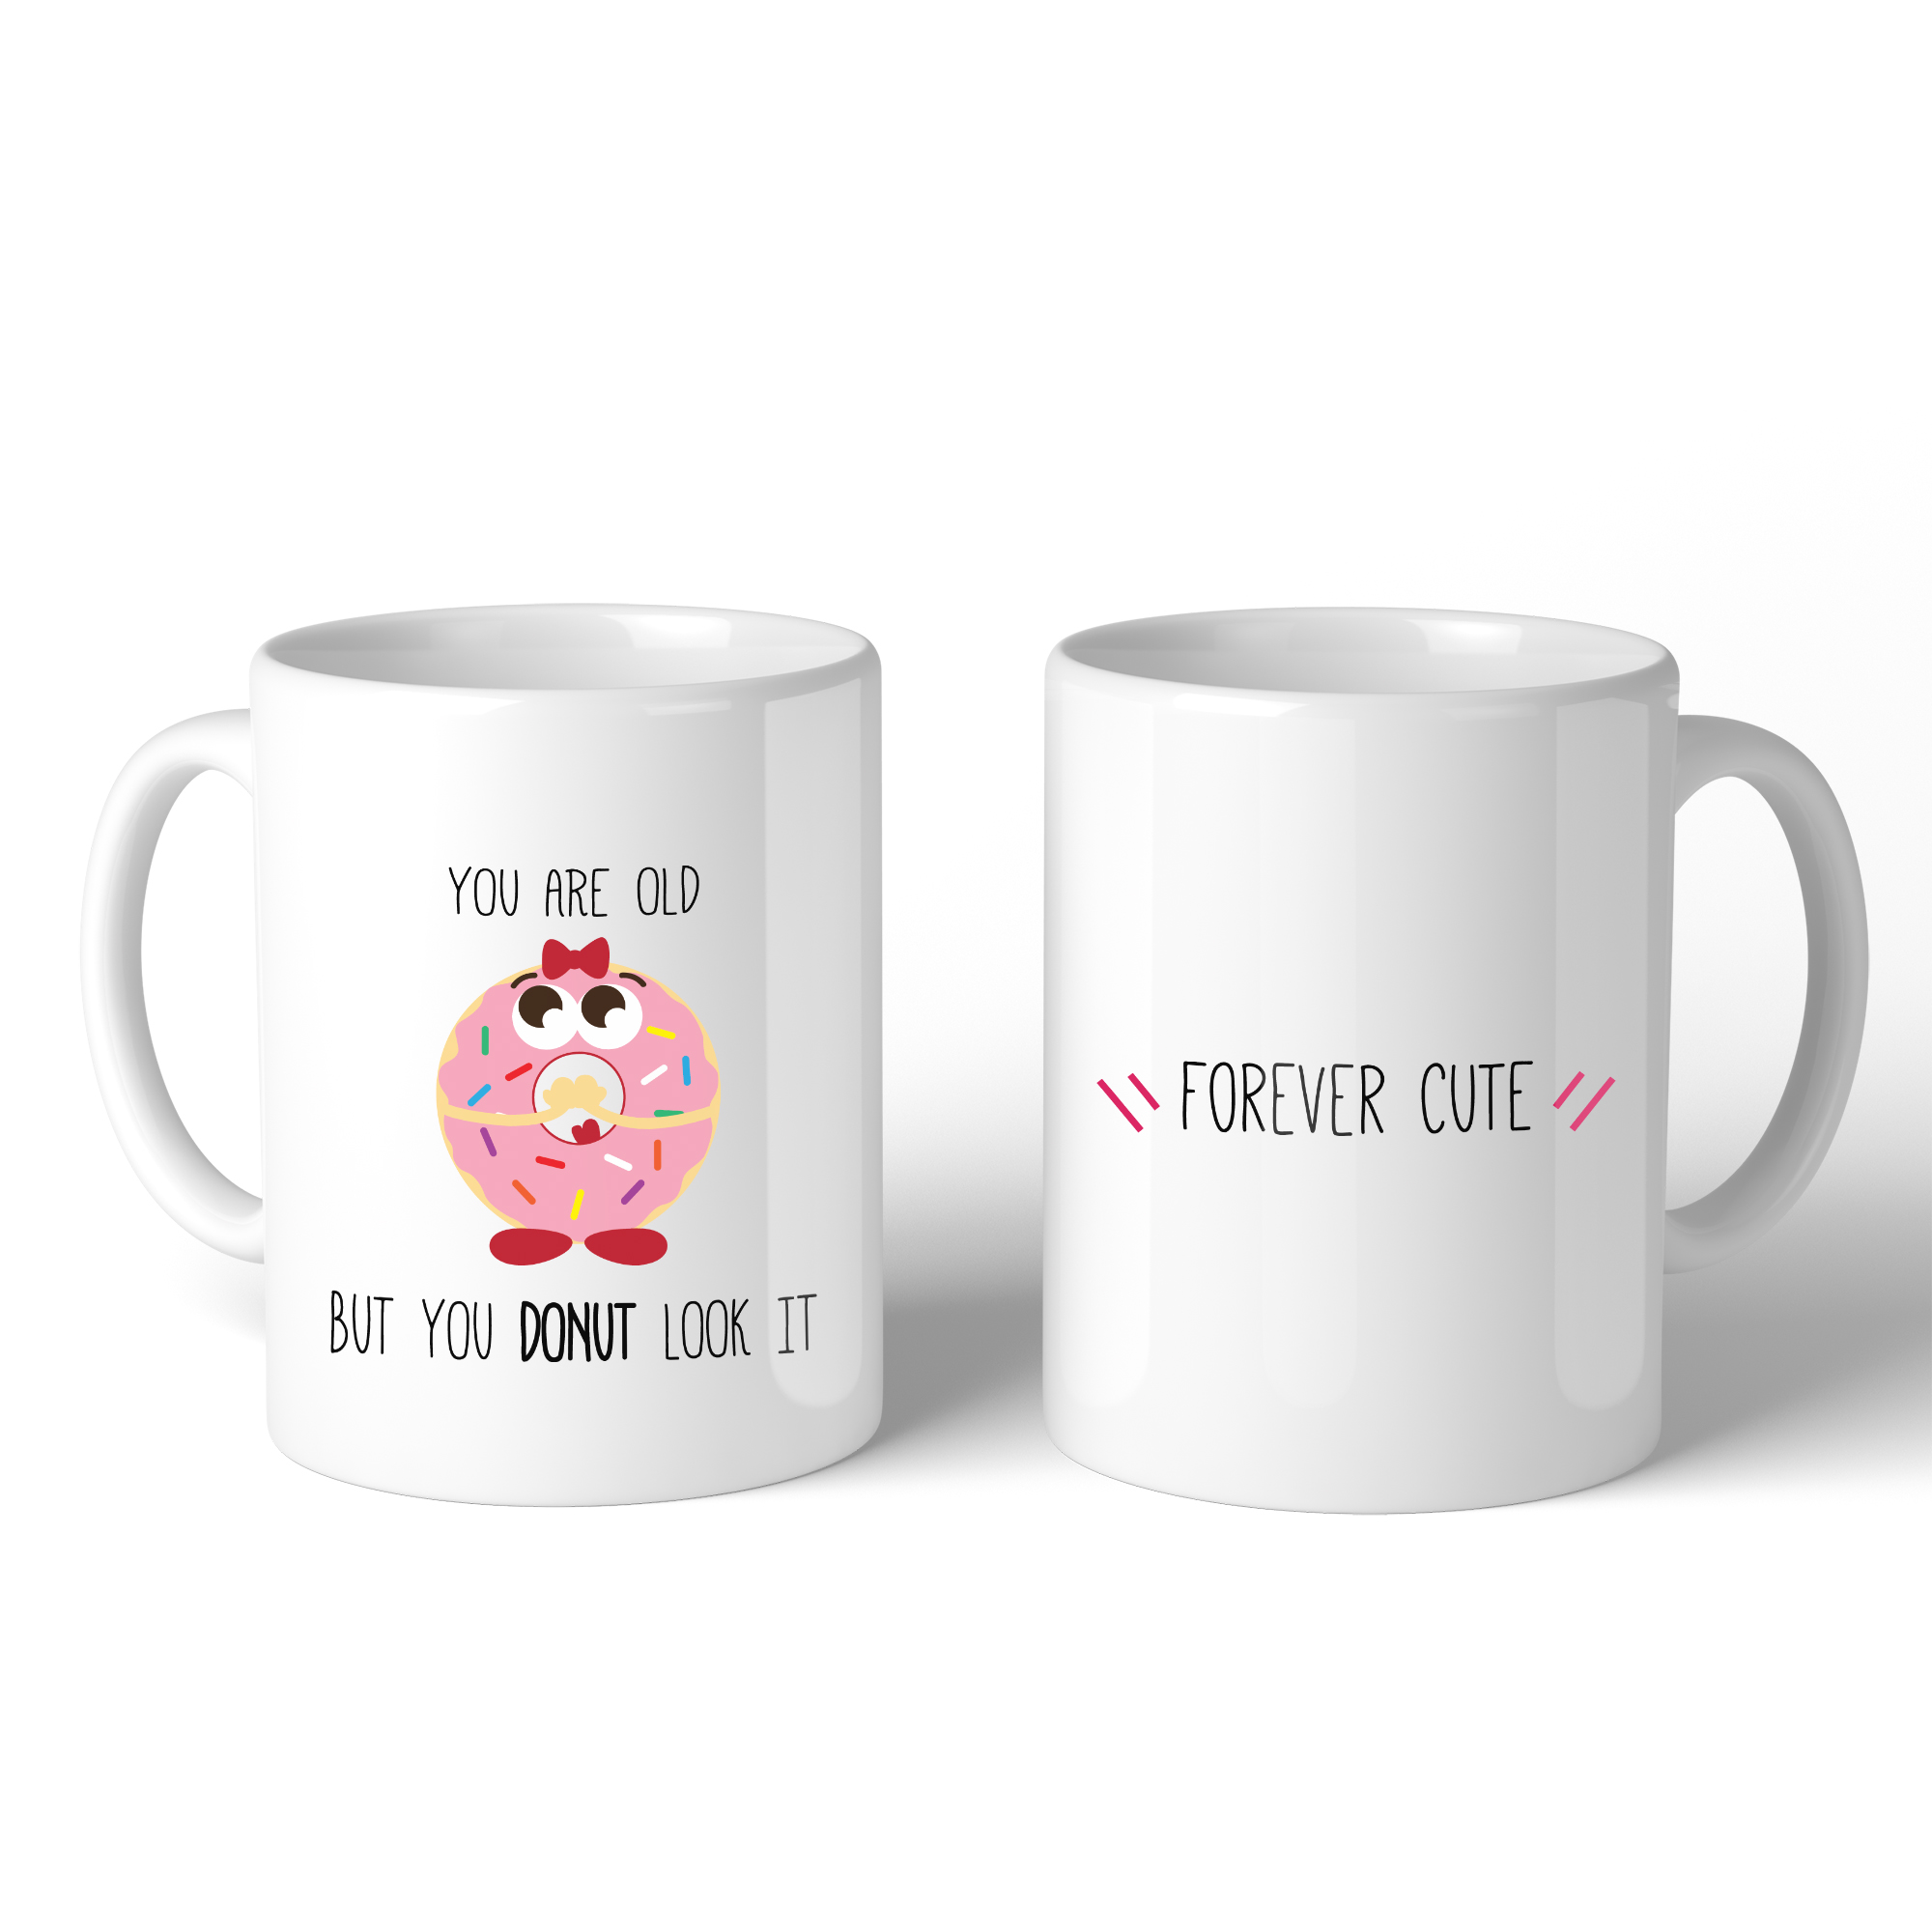 You Are Old But You Donut Look It Funny Birthday Gift Coffee Mug